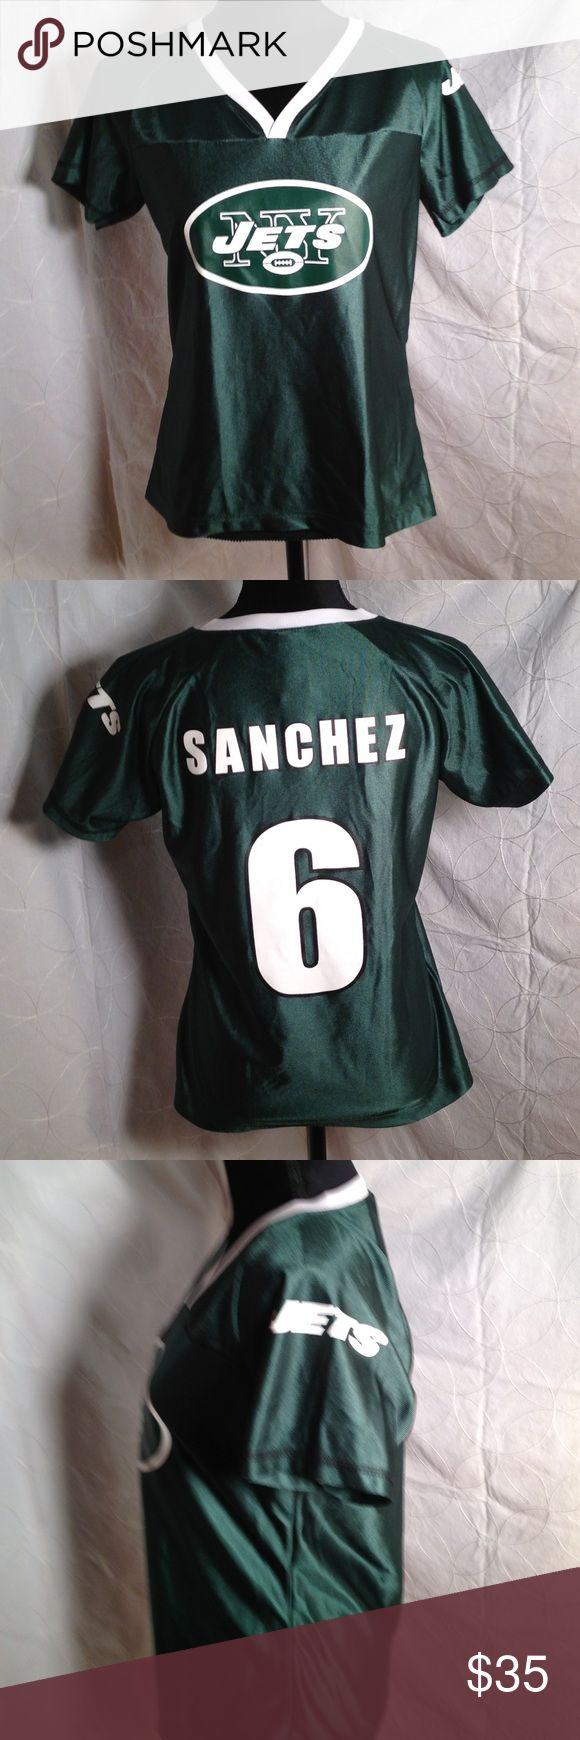 REEBOK NFL Team Apparel JETS (6) Are You Ready for Some Football?!?! SANCHEZ across back shoulders. Screen print design is Pristine! Not Mesh but satiny material. Perfect for Any JETS or Sanchez fan! NFL Team Apparel. NFL Team Apparel Other